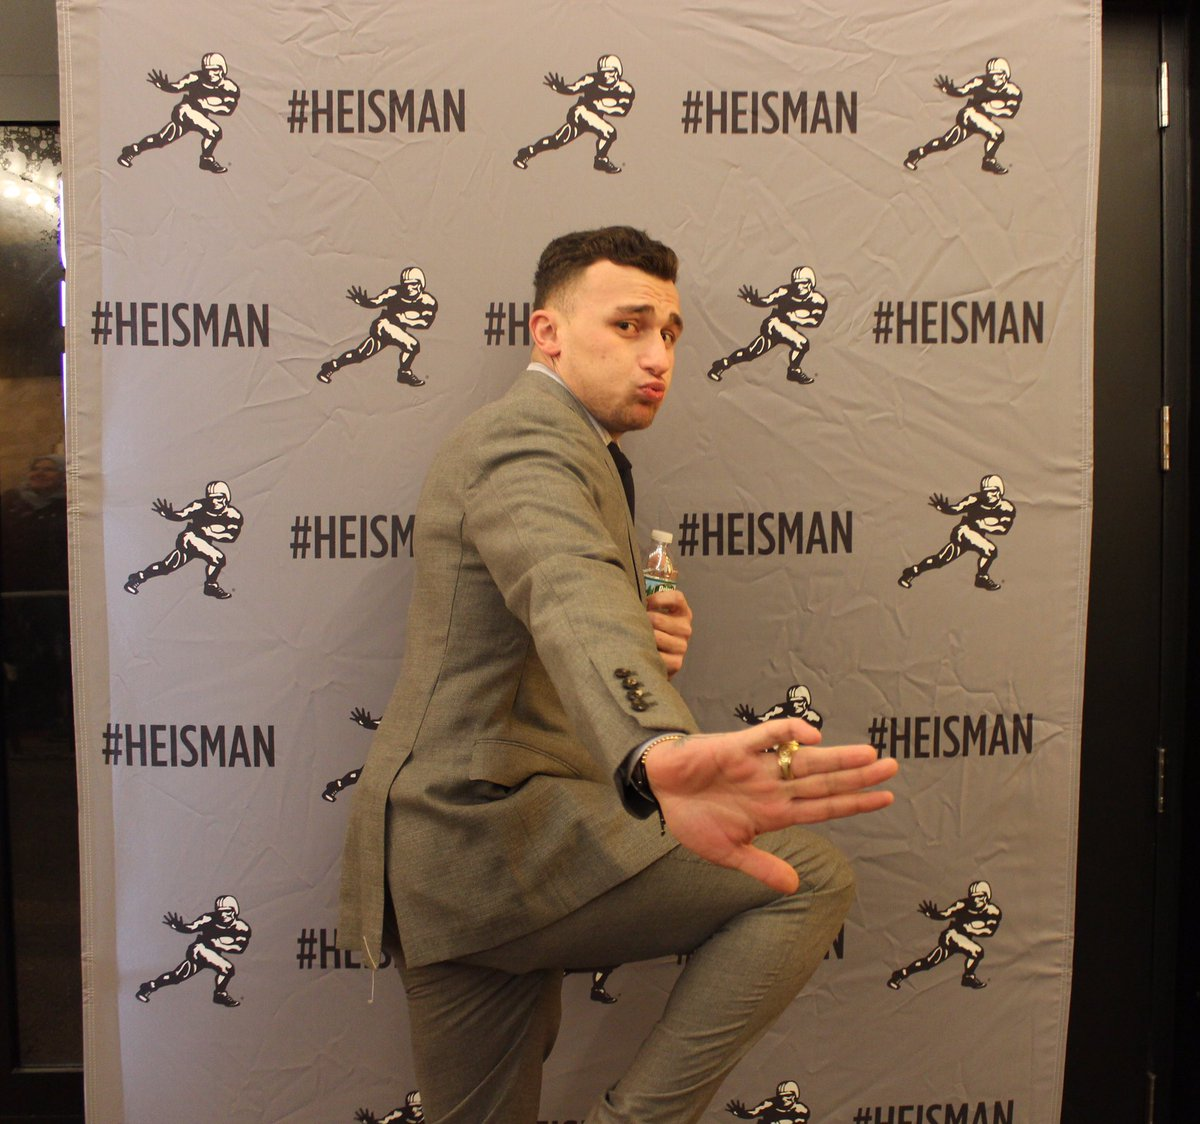 Johnny Football in the building #Heisman (via @HeismanTrophy) https://t.co/5jNHqYgvgZ